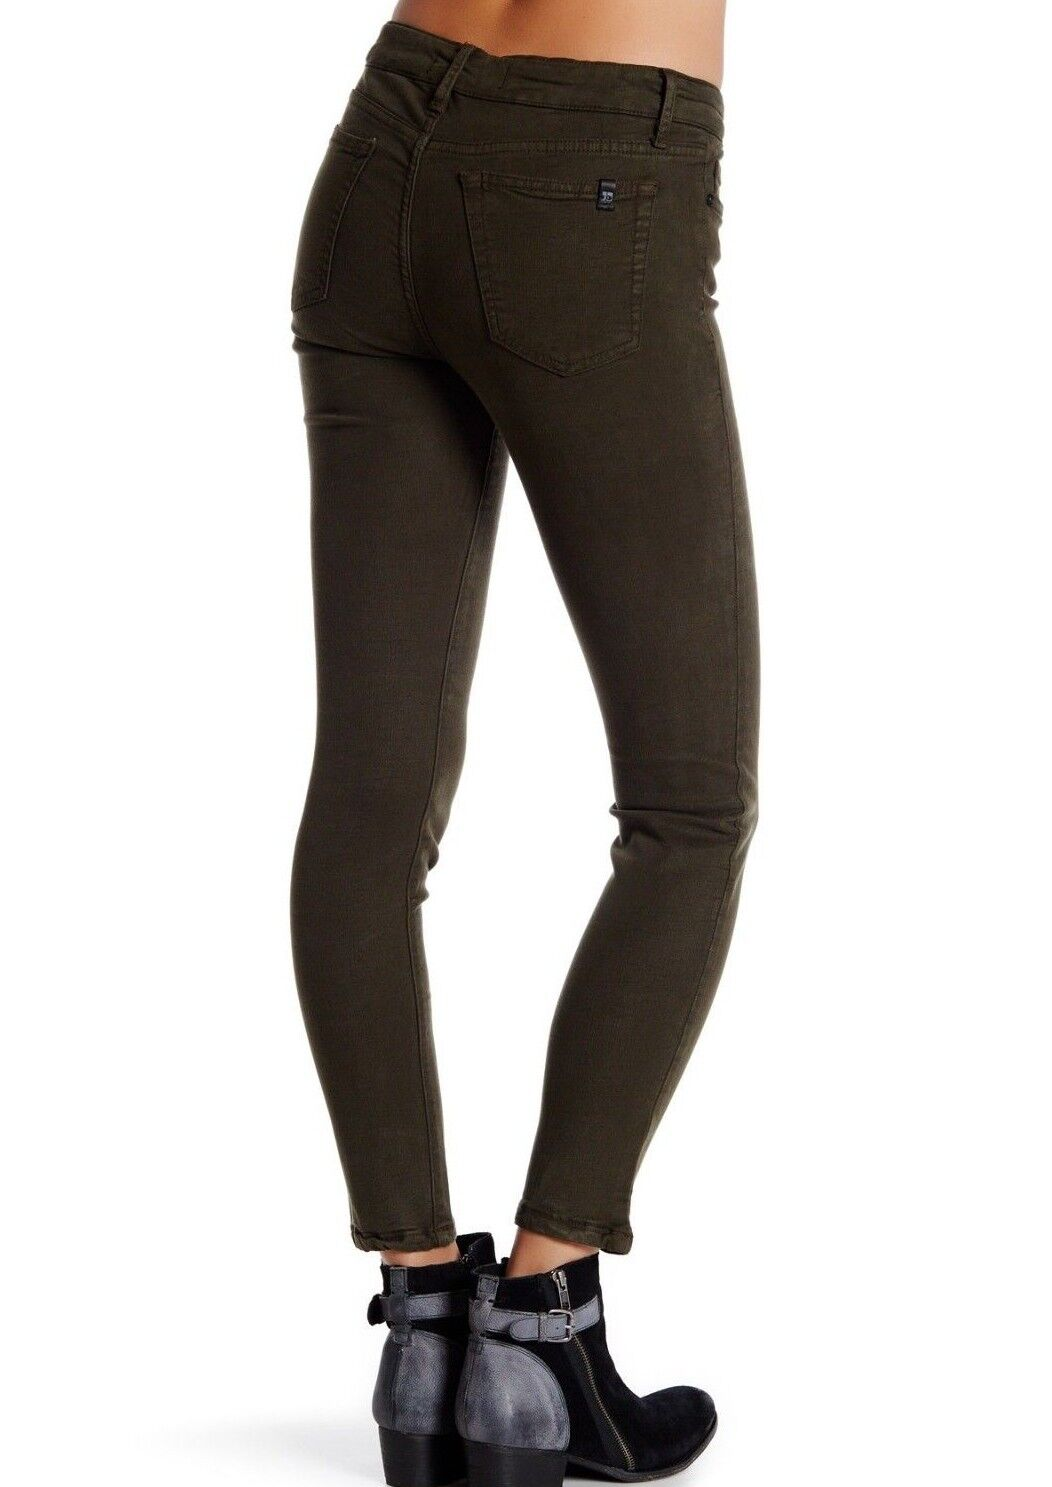 NWT JOE'S JEANS Sz29 THE SKINNY ANKLE MIDRISE STRETCH jeans MILITARY GREEN